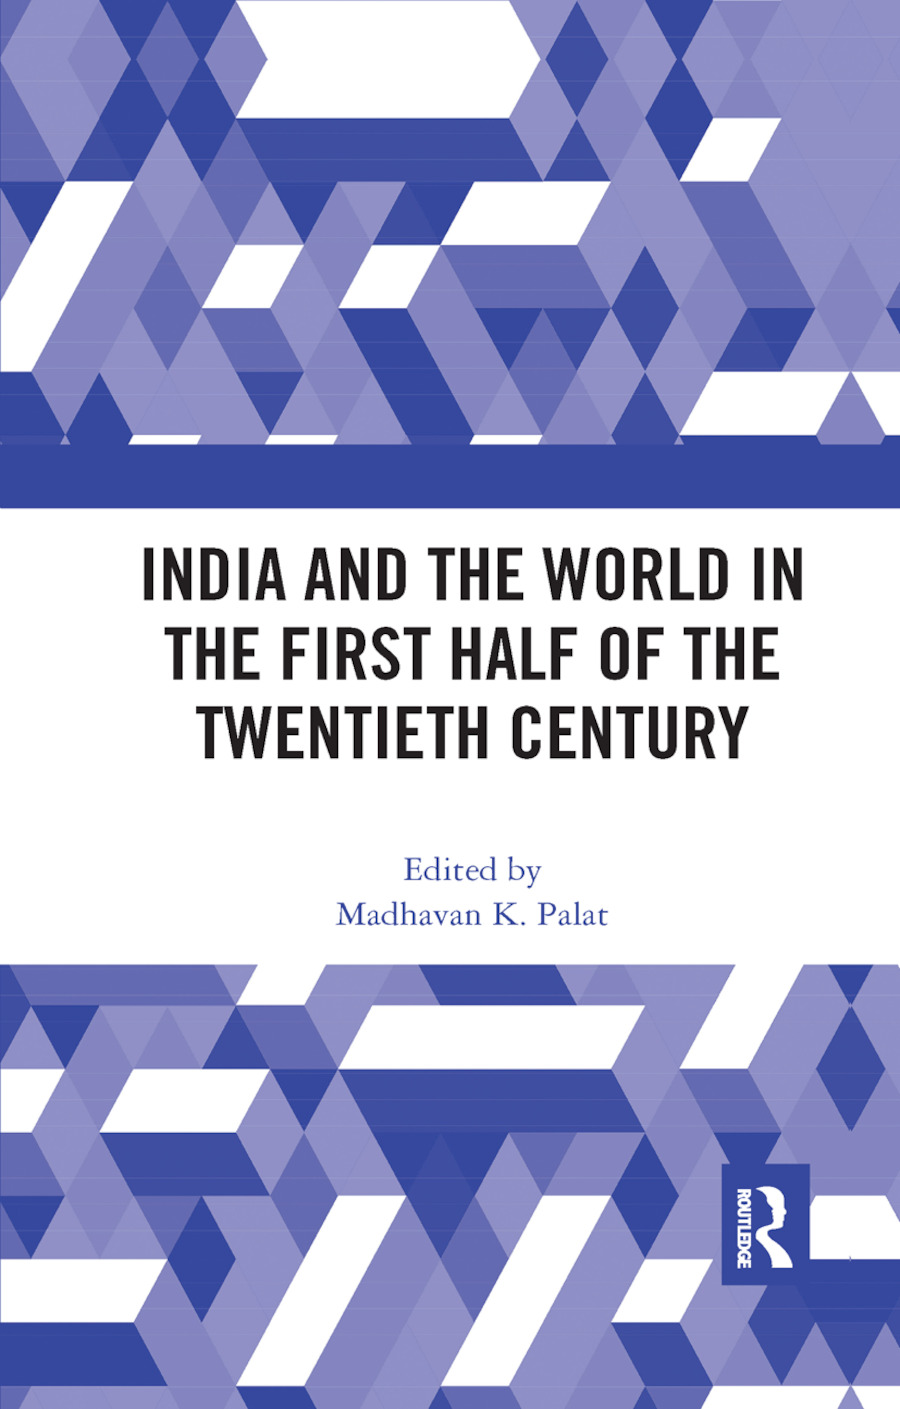 India and the World in the First Half of the Twentieth Century book cover